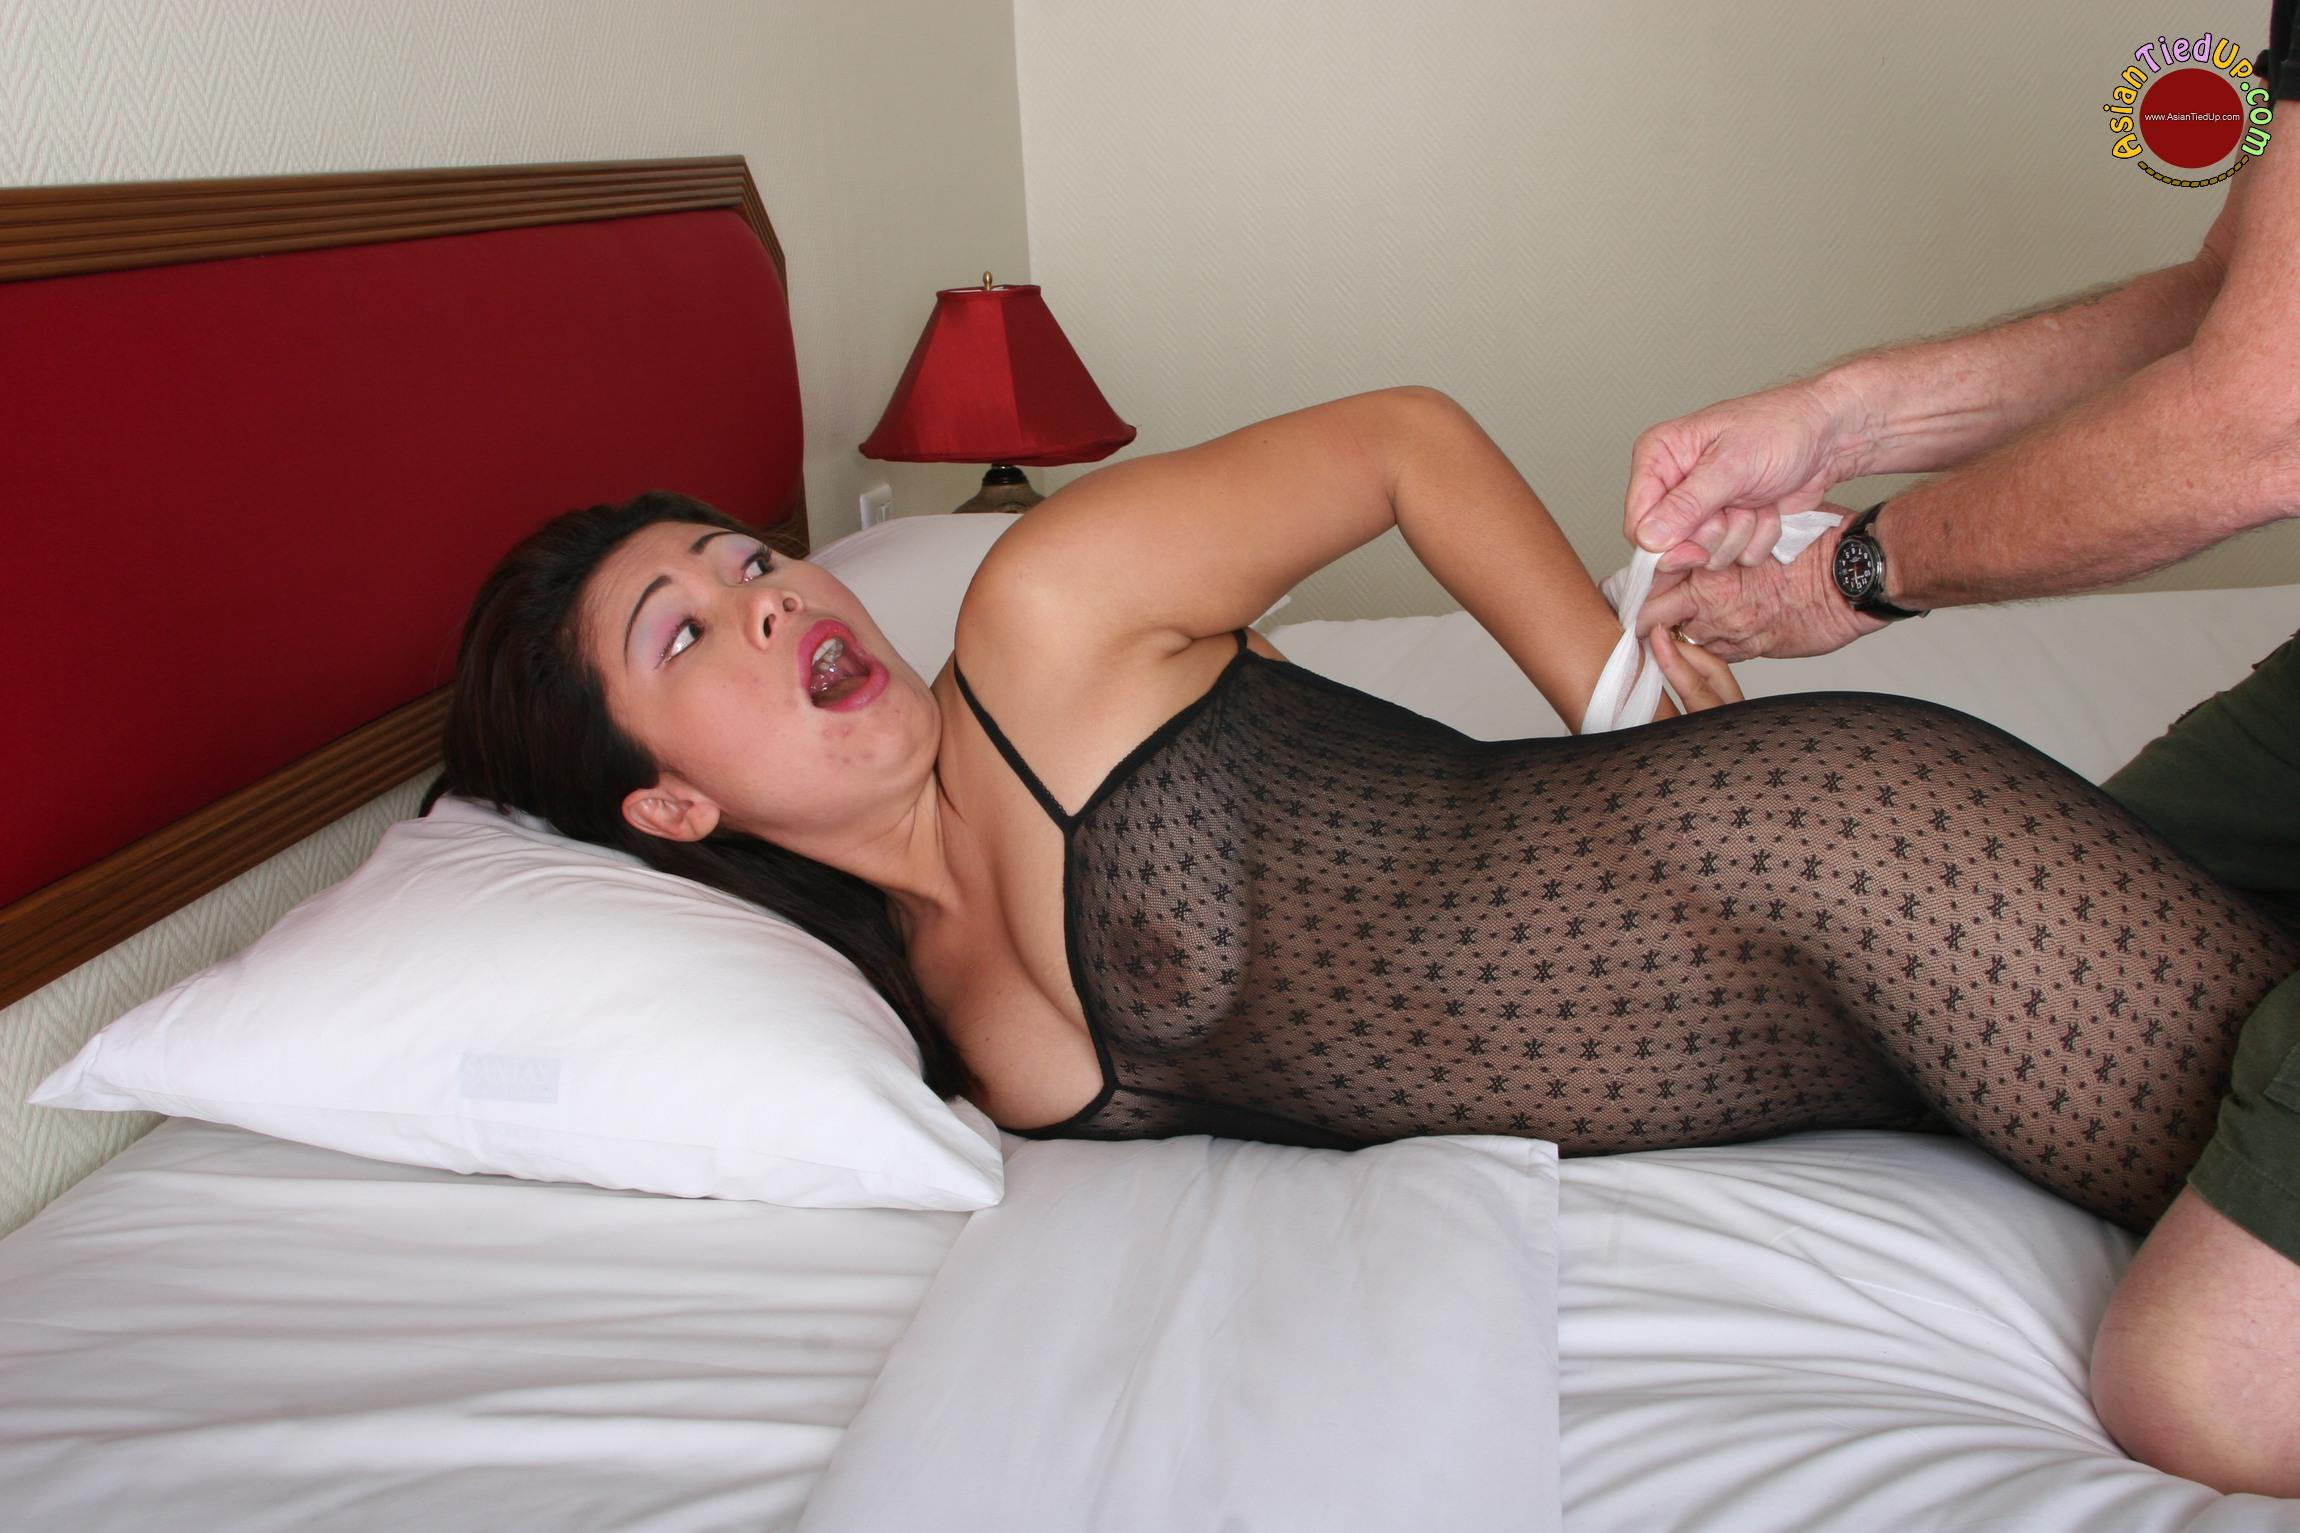 Women tied up getting fucked